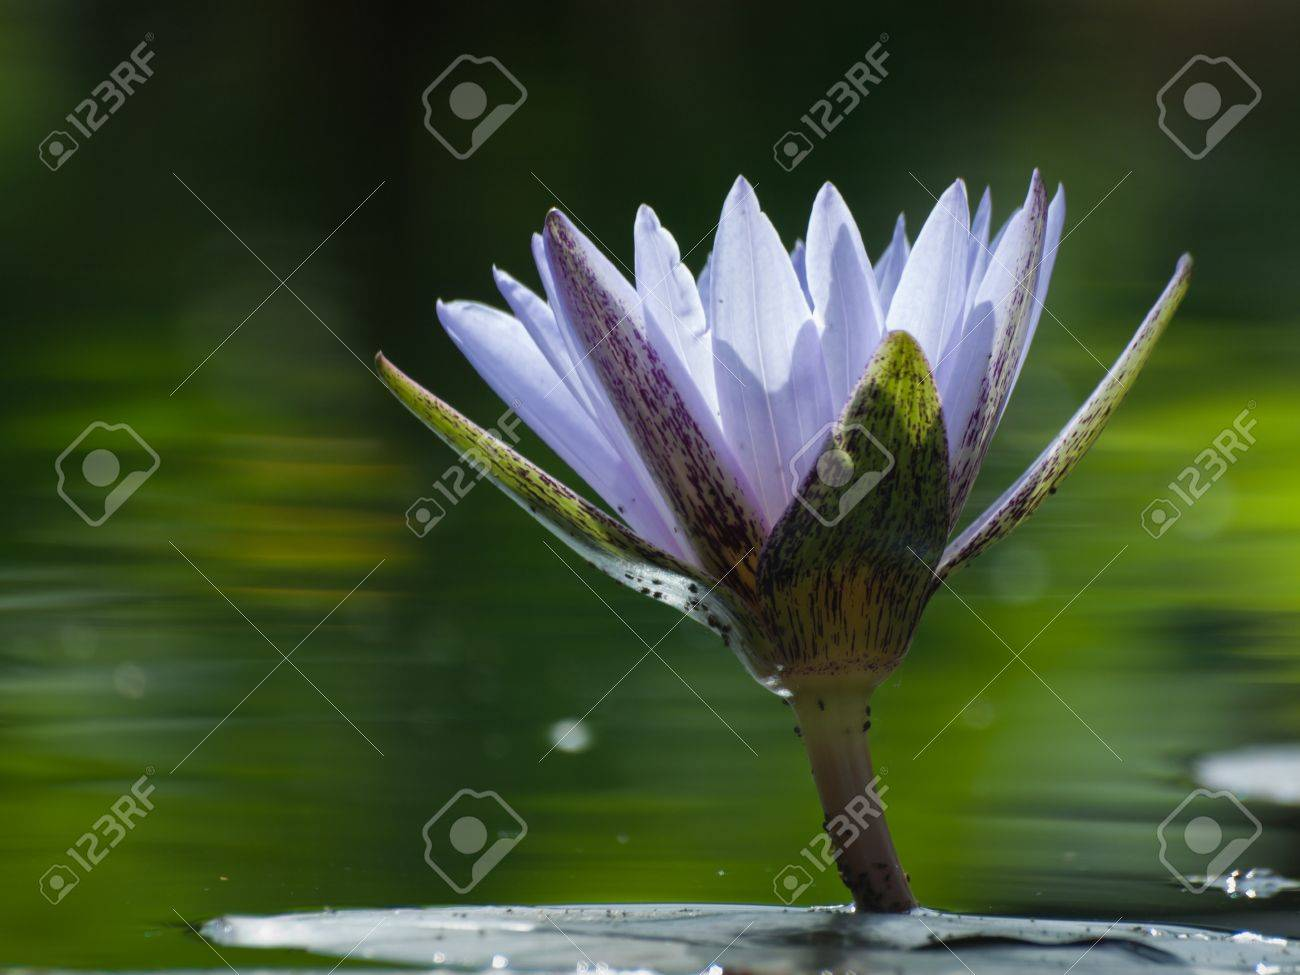 Water lily blossoming in the pond. N. 'Bill Frase' water lily. Stock Photo - 10497353